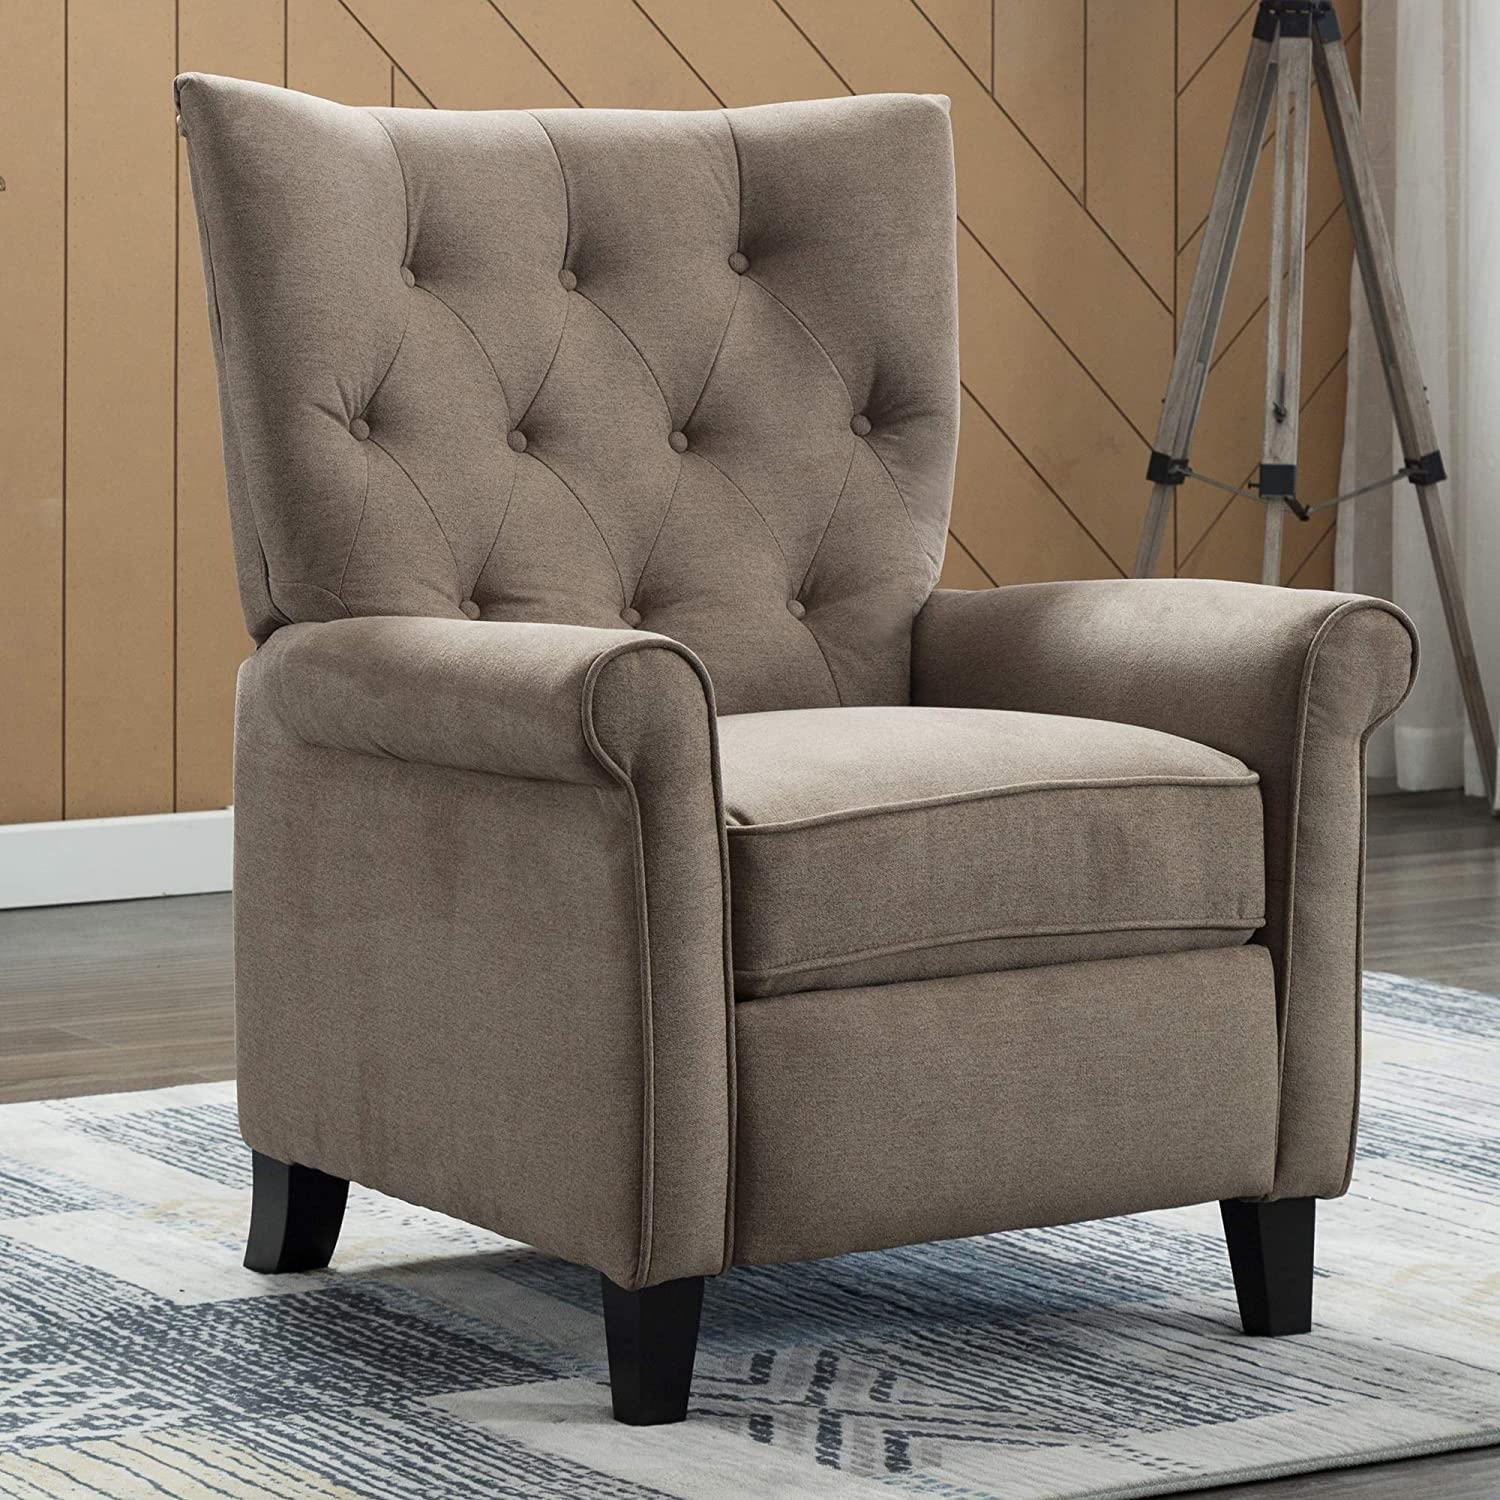 EBELLO Push Back Recliner Accent Chair for Living Room Elegant Roll Arm Chair for Bedroom (Khaki)